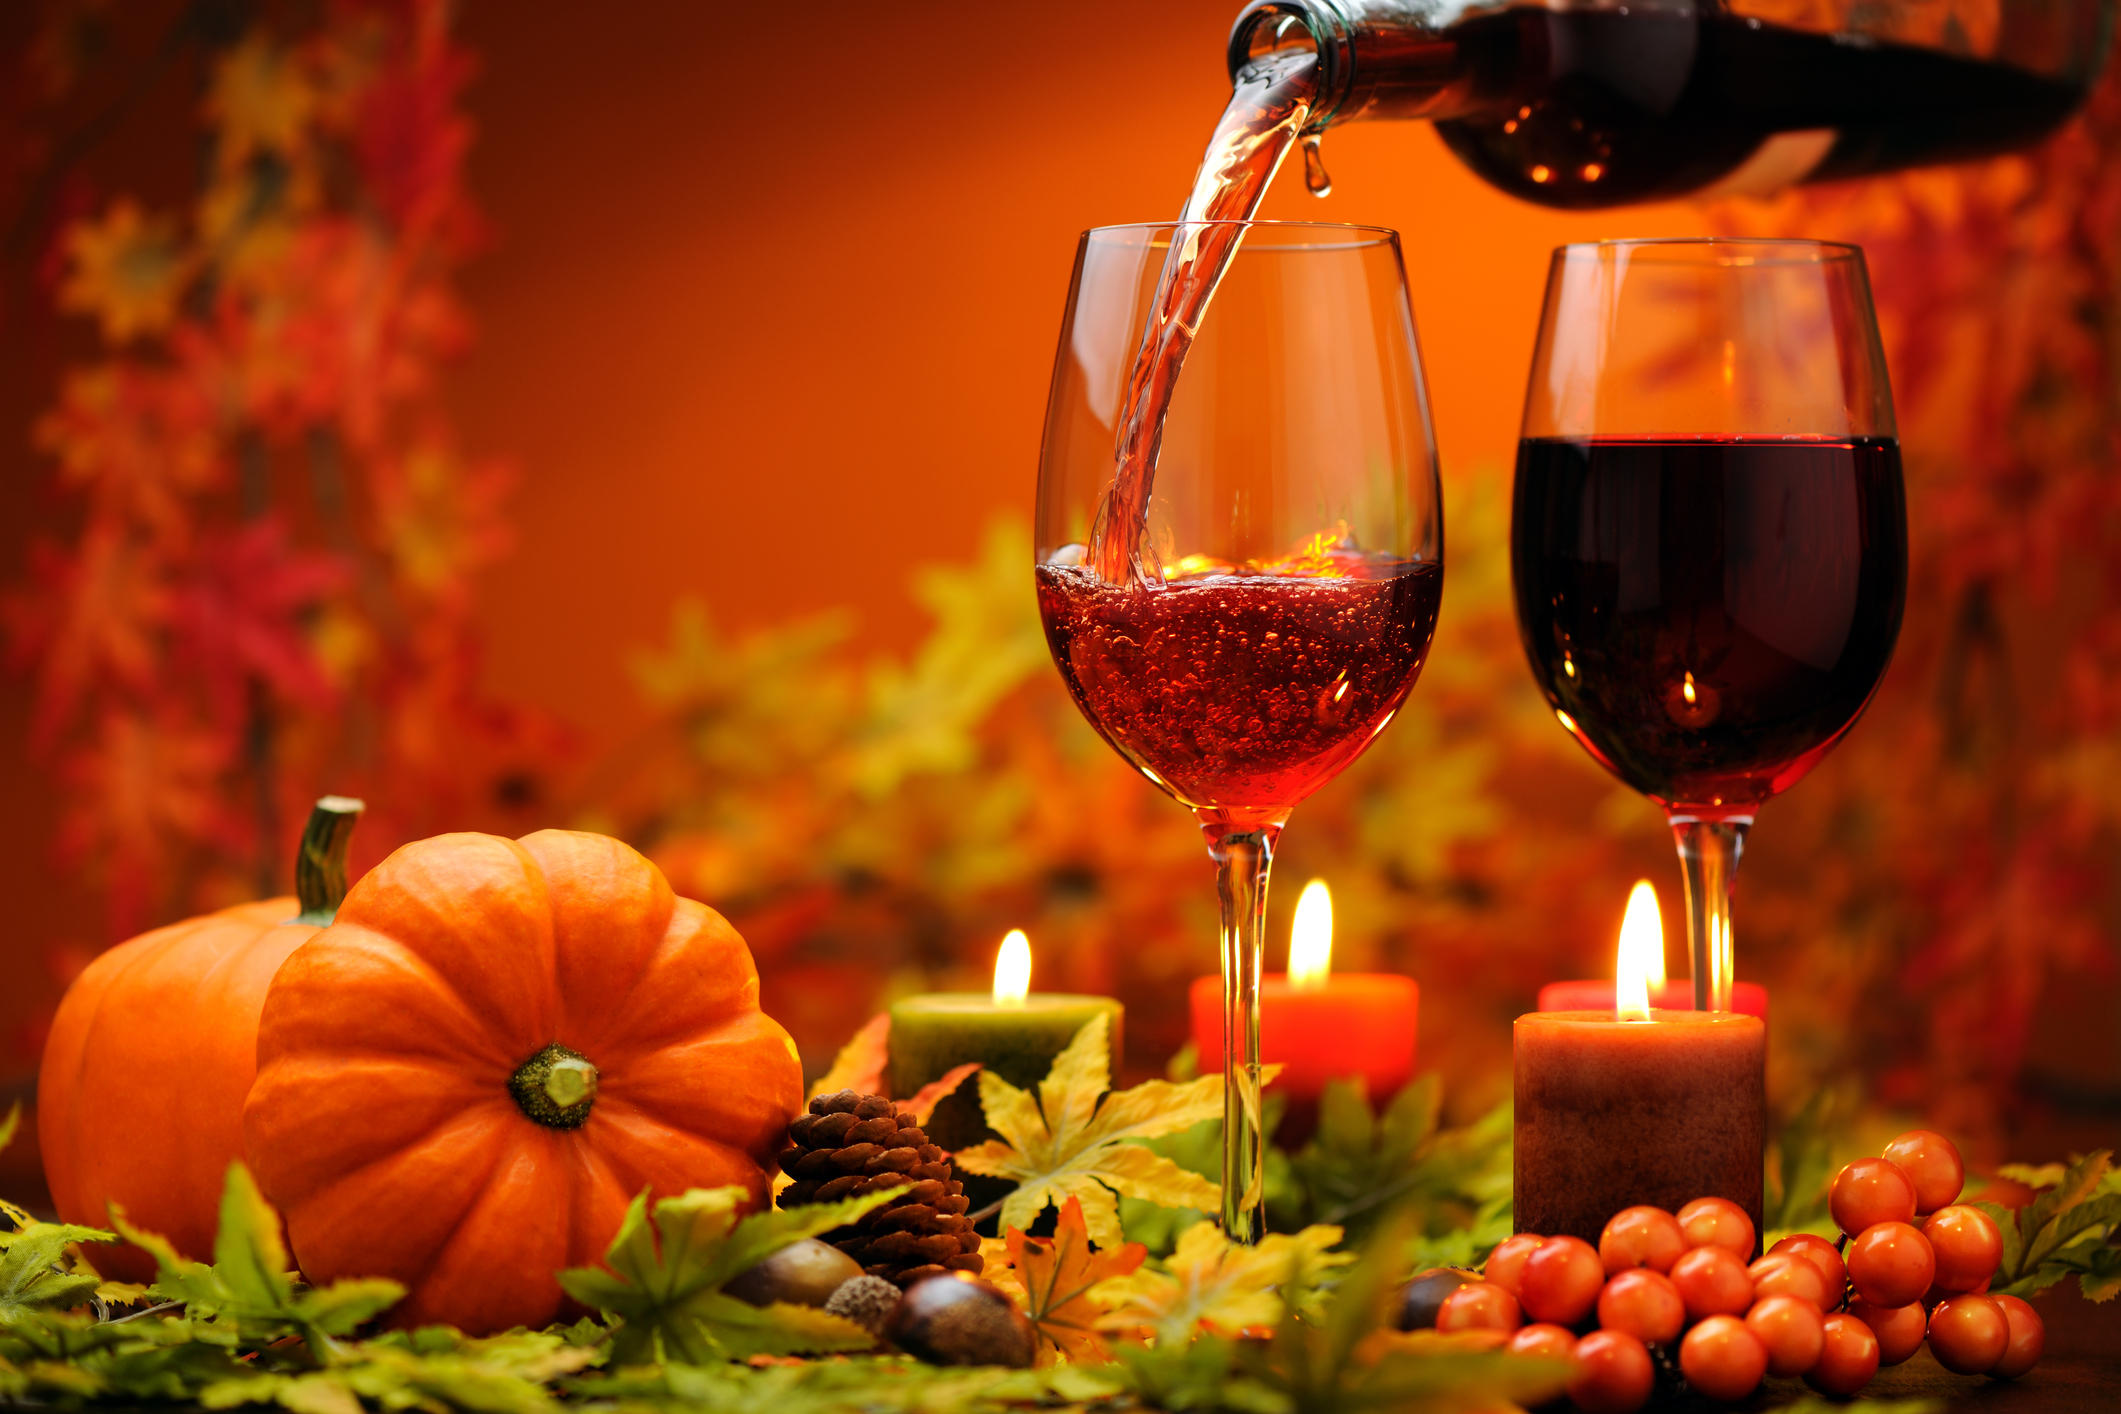 The Best Wines To Serve With Turkey